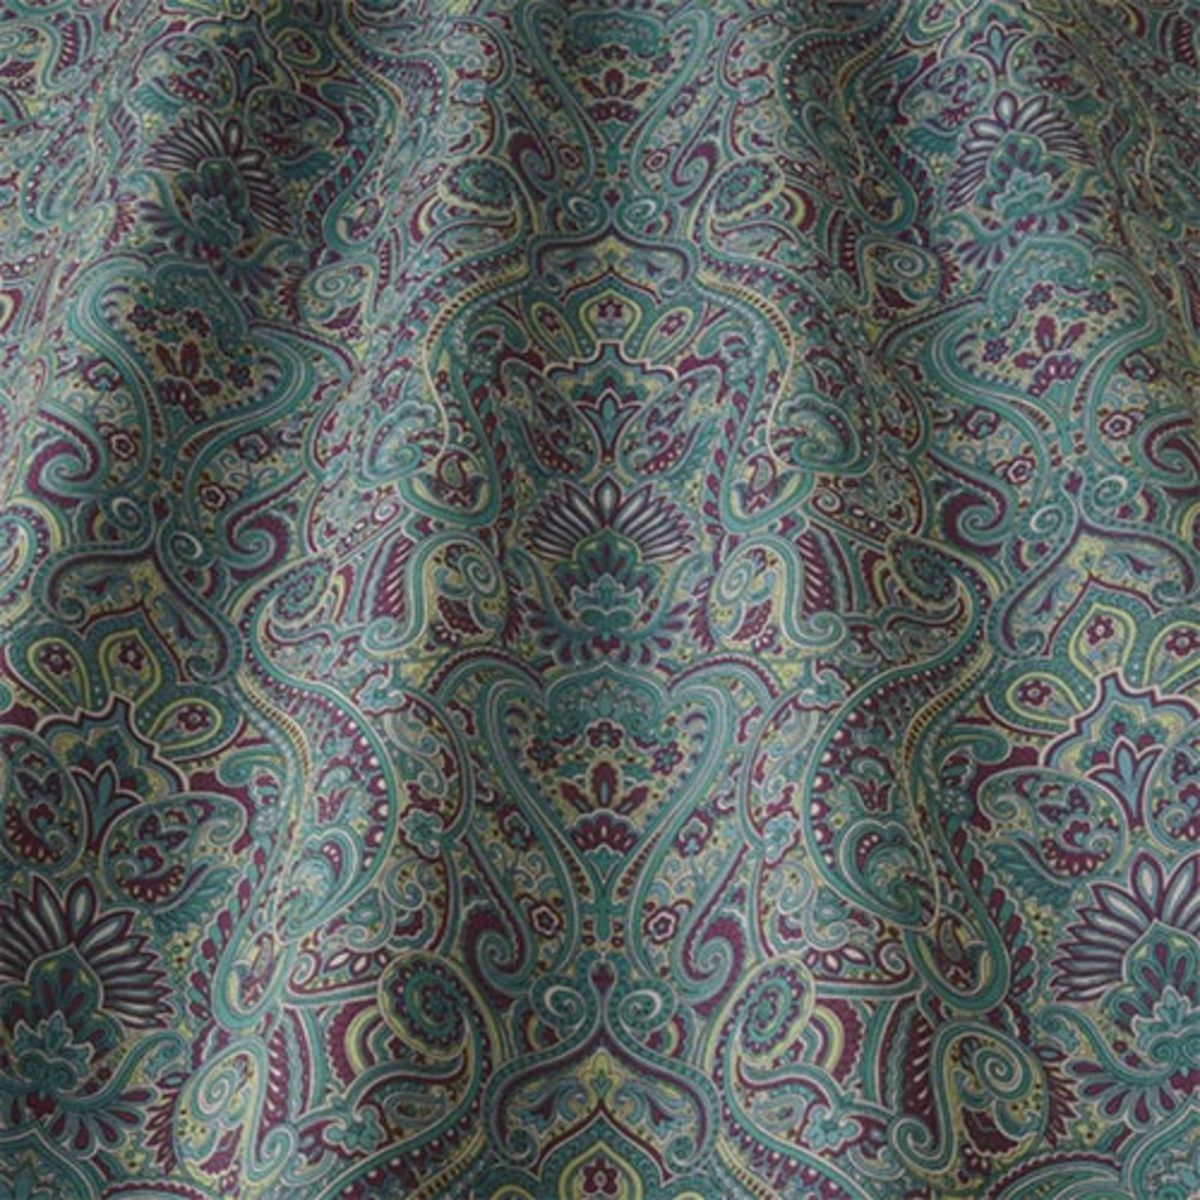 I Liv Fabrics And Wallpapers Cotswold Collection Jade Klee Mulberry Fabric Slendermorris Com Upholstery Fabric Mulberry Fabric Upholstery